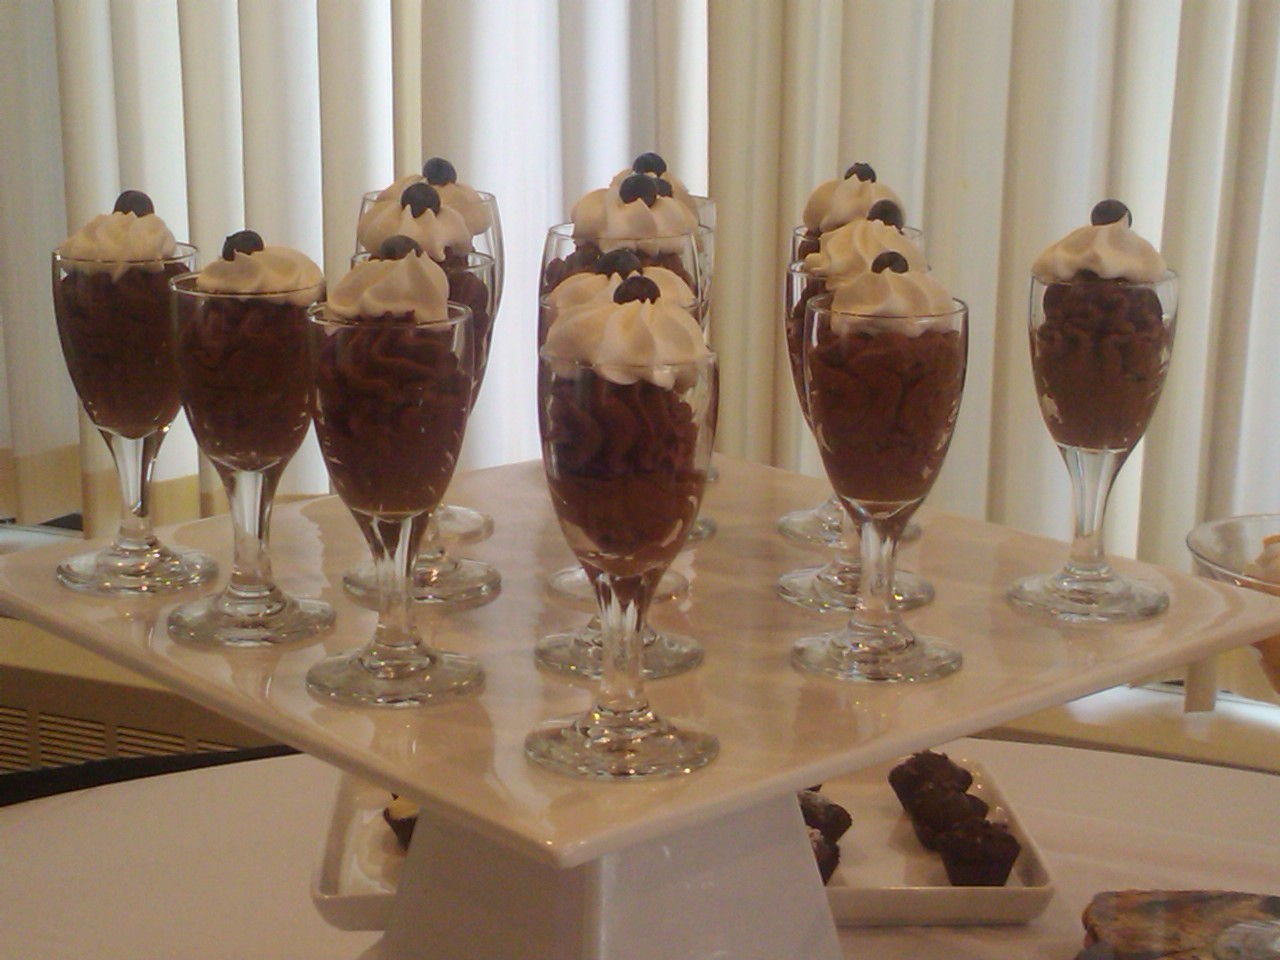 Chocolate mousse by Chef Toby Willis